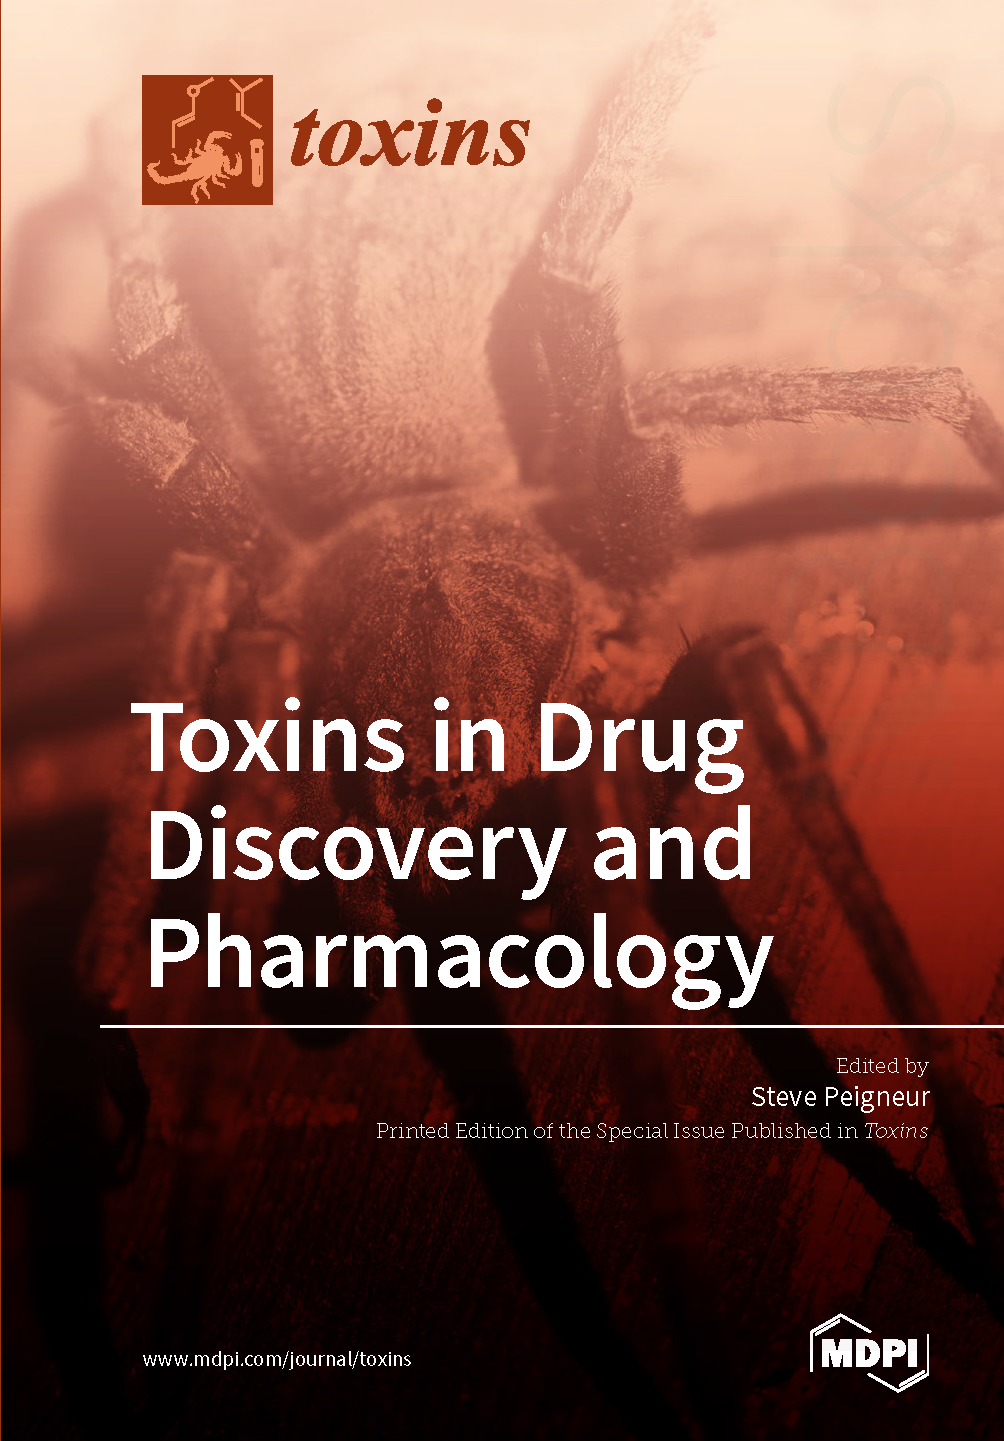 Toxins in Drug Discovery and Pharmacology